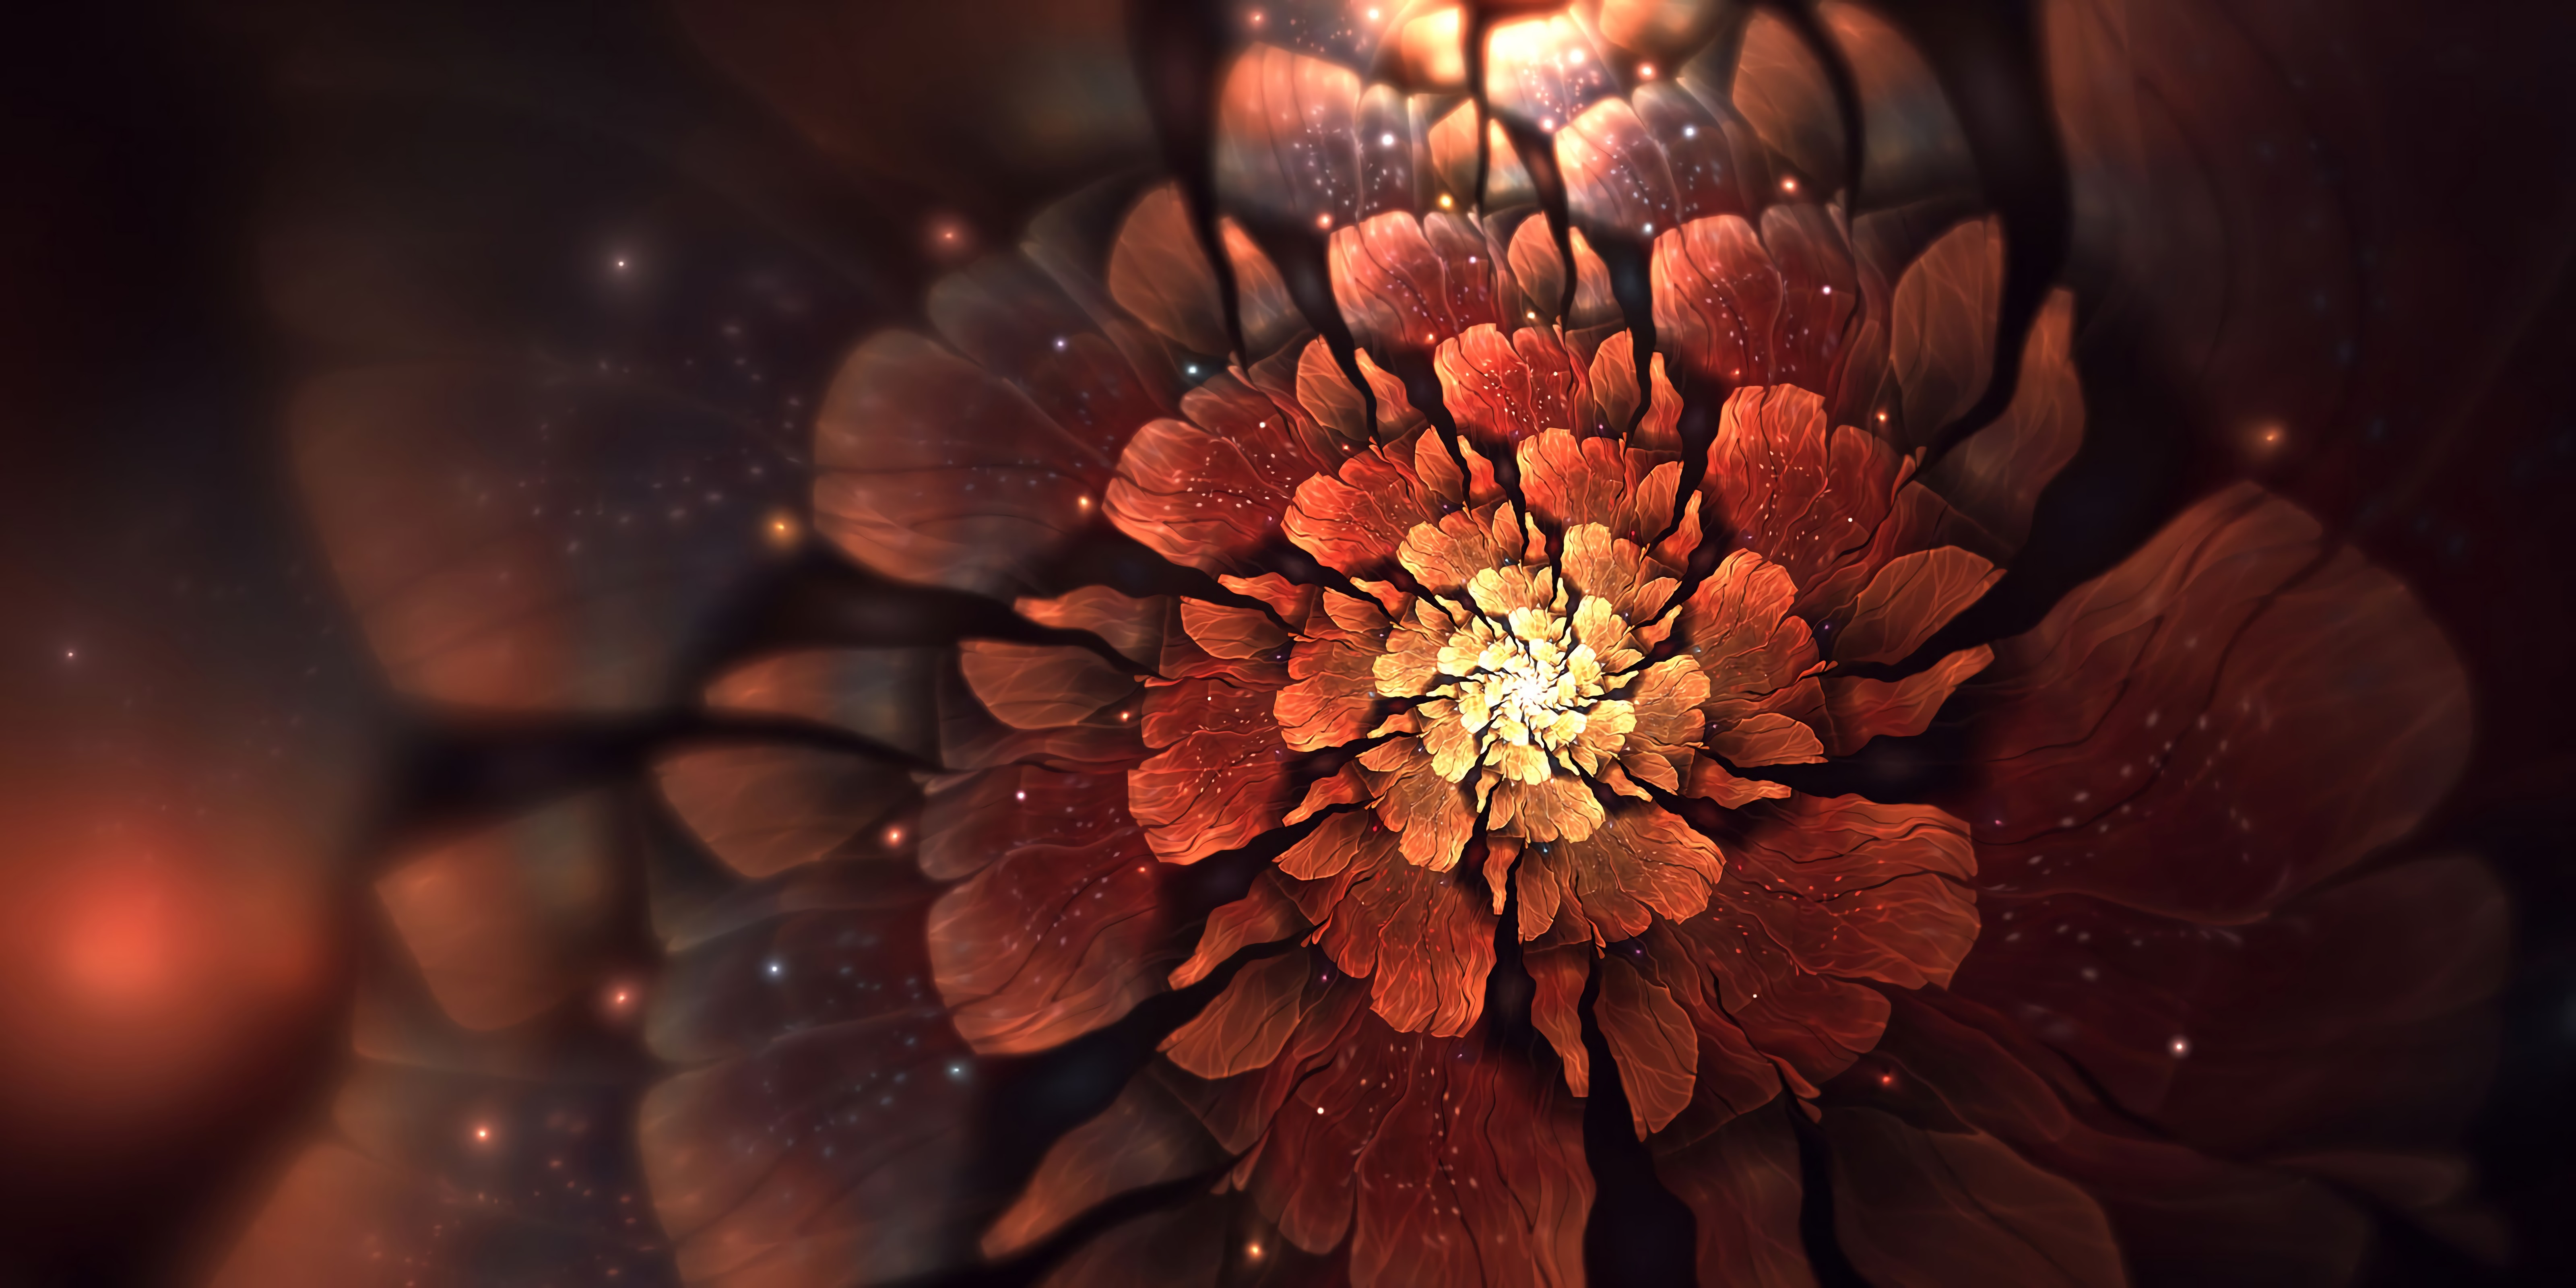 135142 download wallpaper Abstract, Fractal, Flower, Glow, Glare screensavers and pictures for free